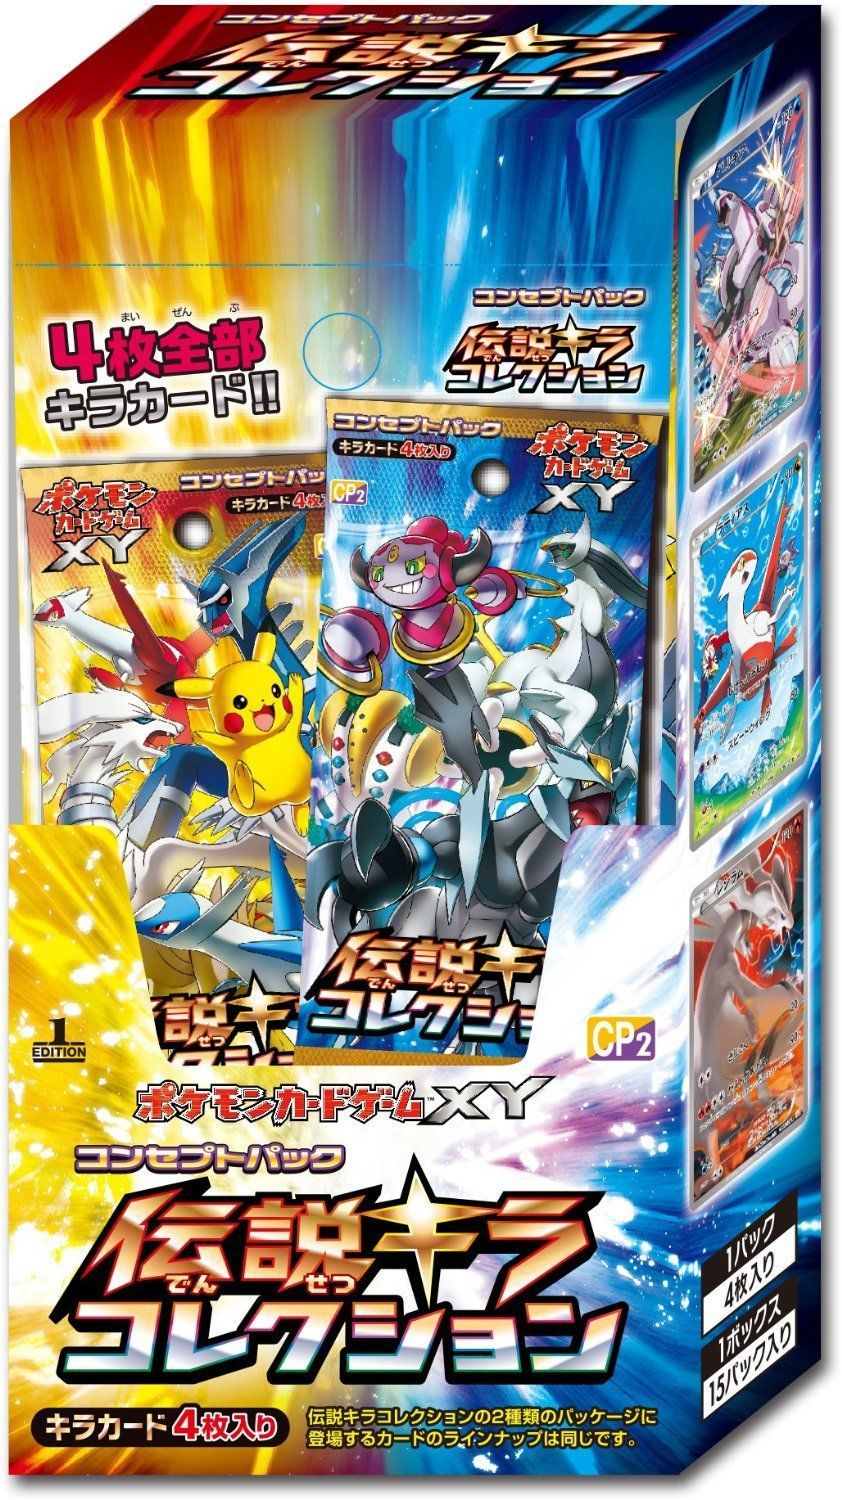 New Pokemon Card Xy Legendary Holo Collection Box Concept